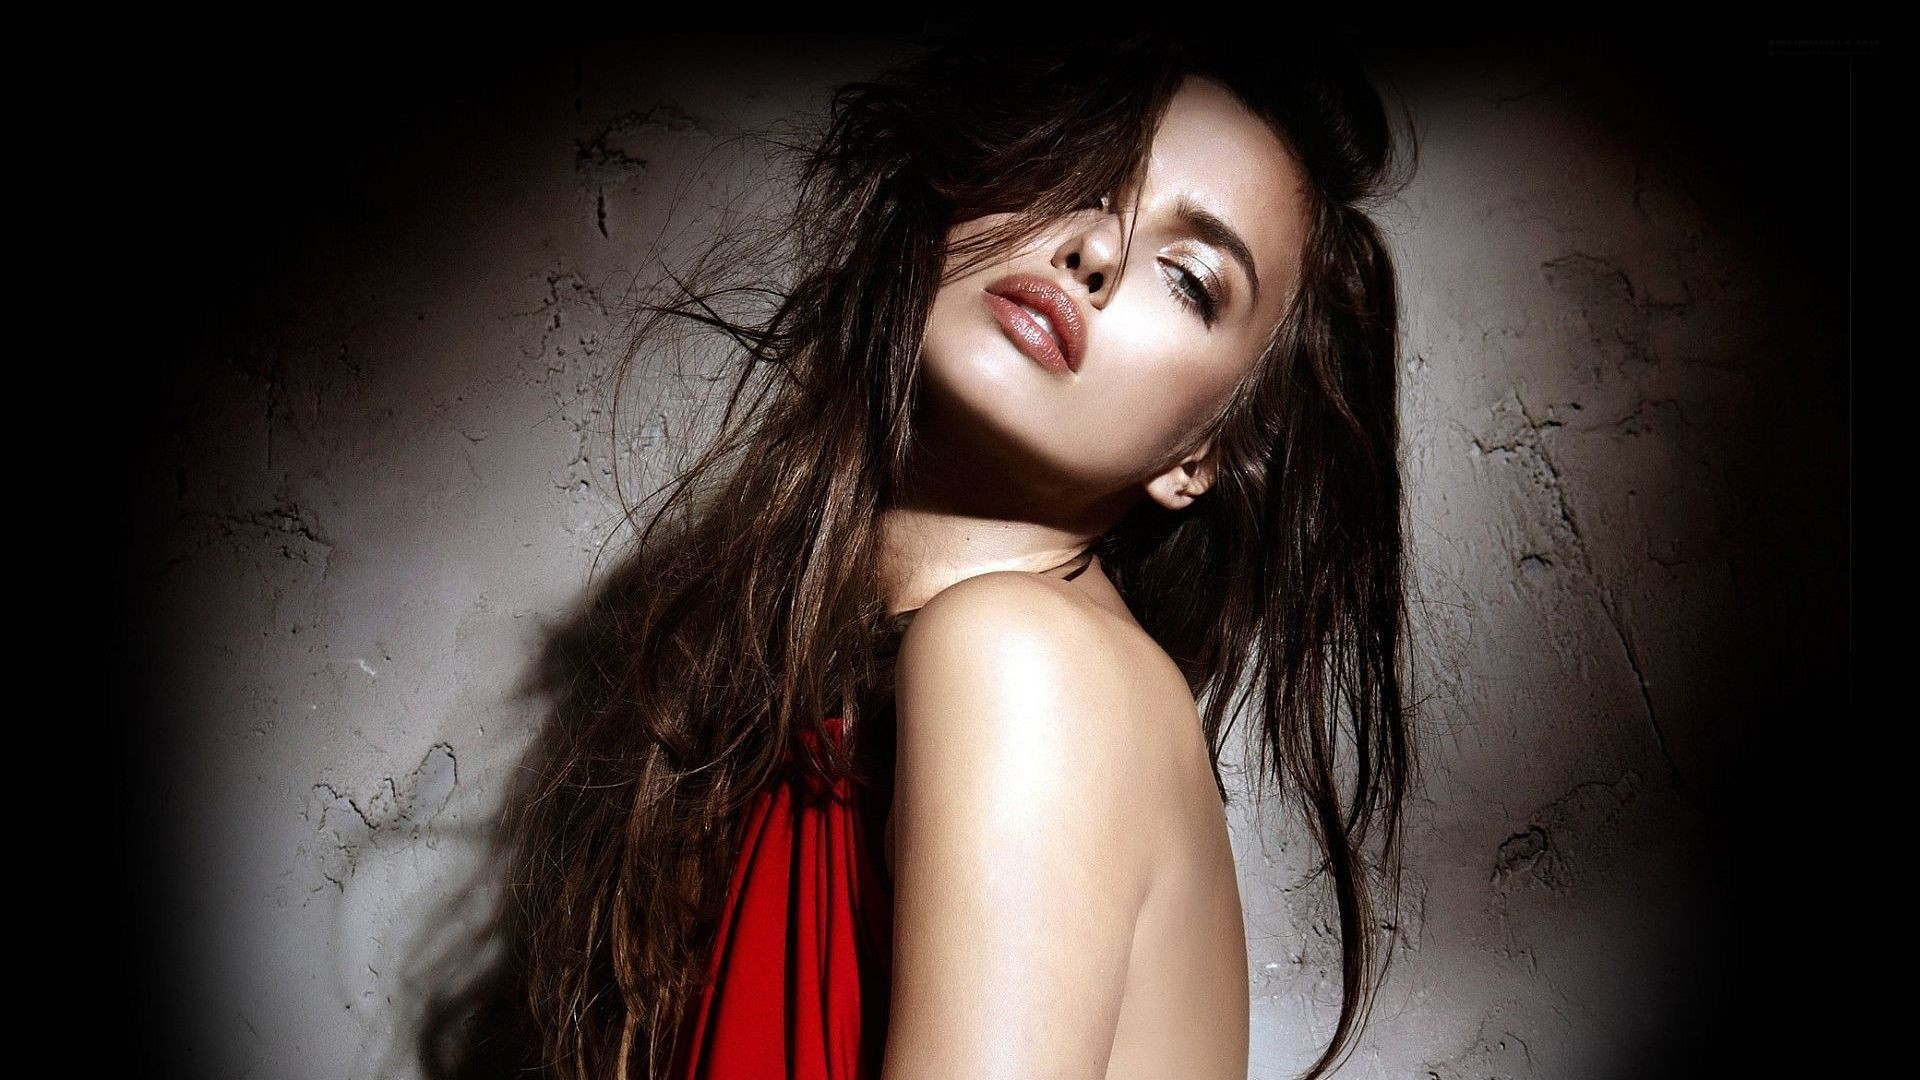 Irina Shayk Hd Post Available In 1920 1080 Pixel Girl In Attractive Pose And Thick Cosmeics She Is Full Of Wild Beauty Tv Movies Post Free Wallpaper World